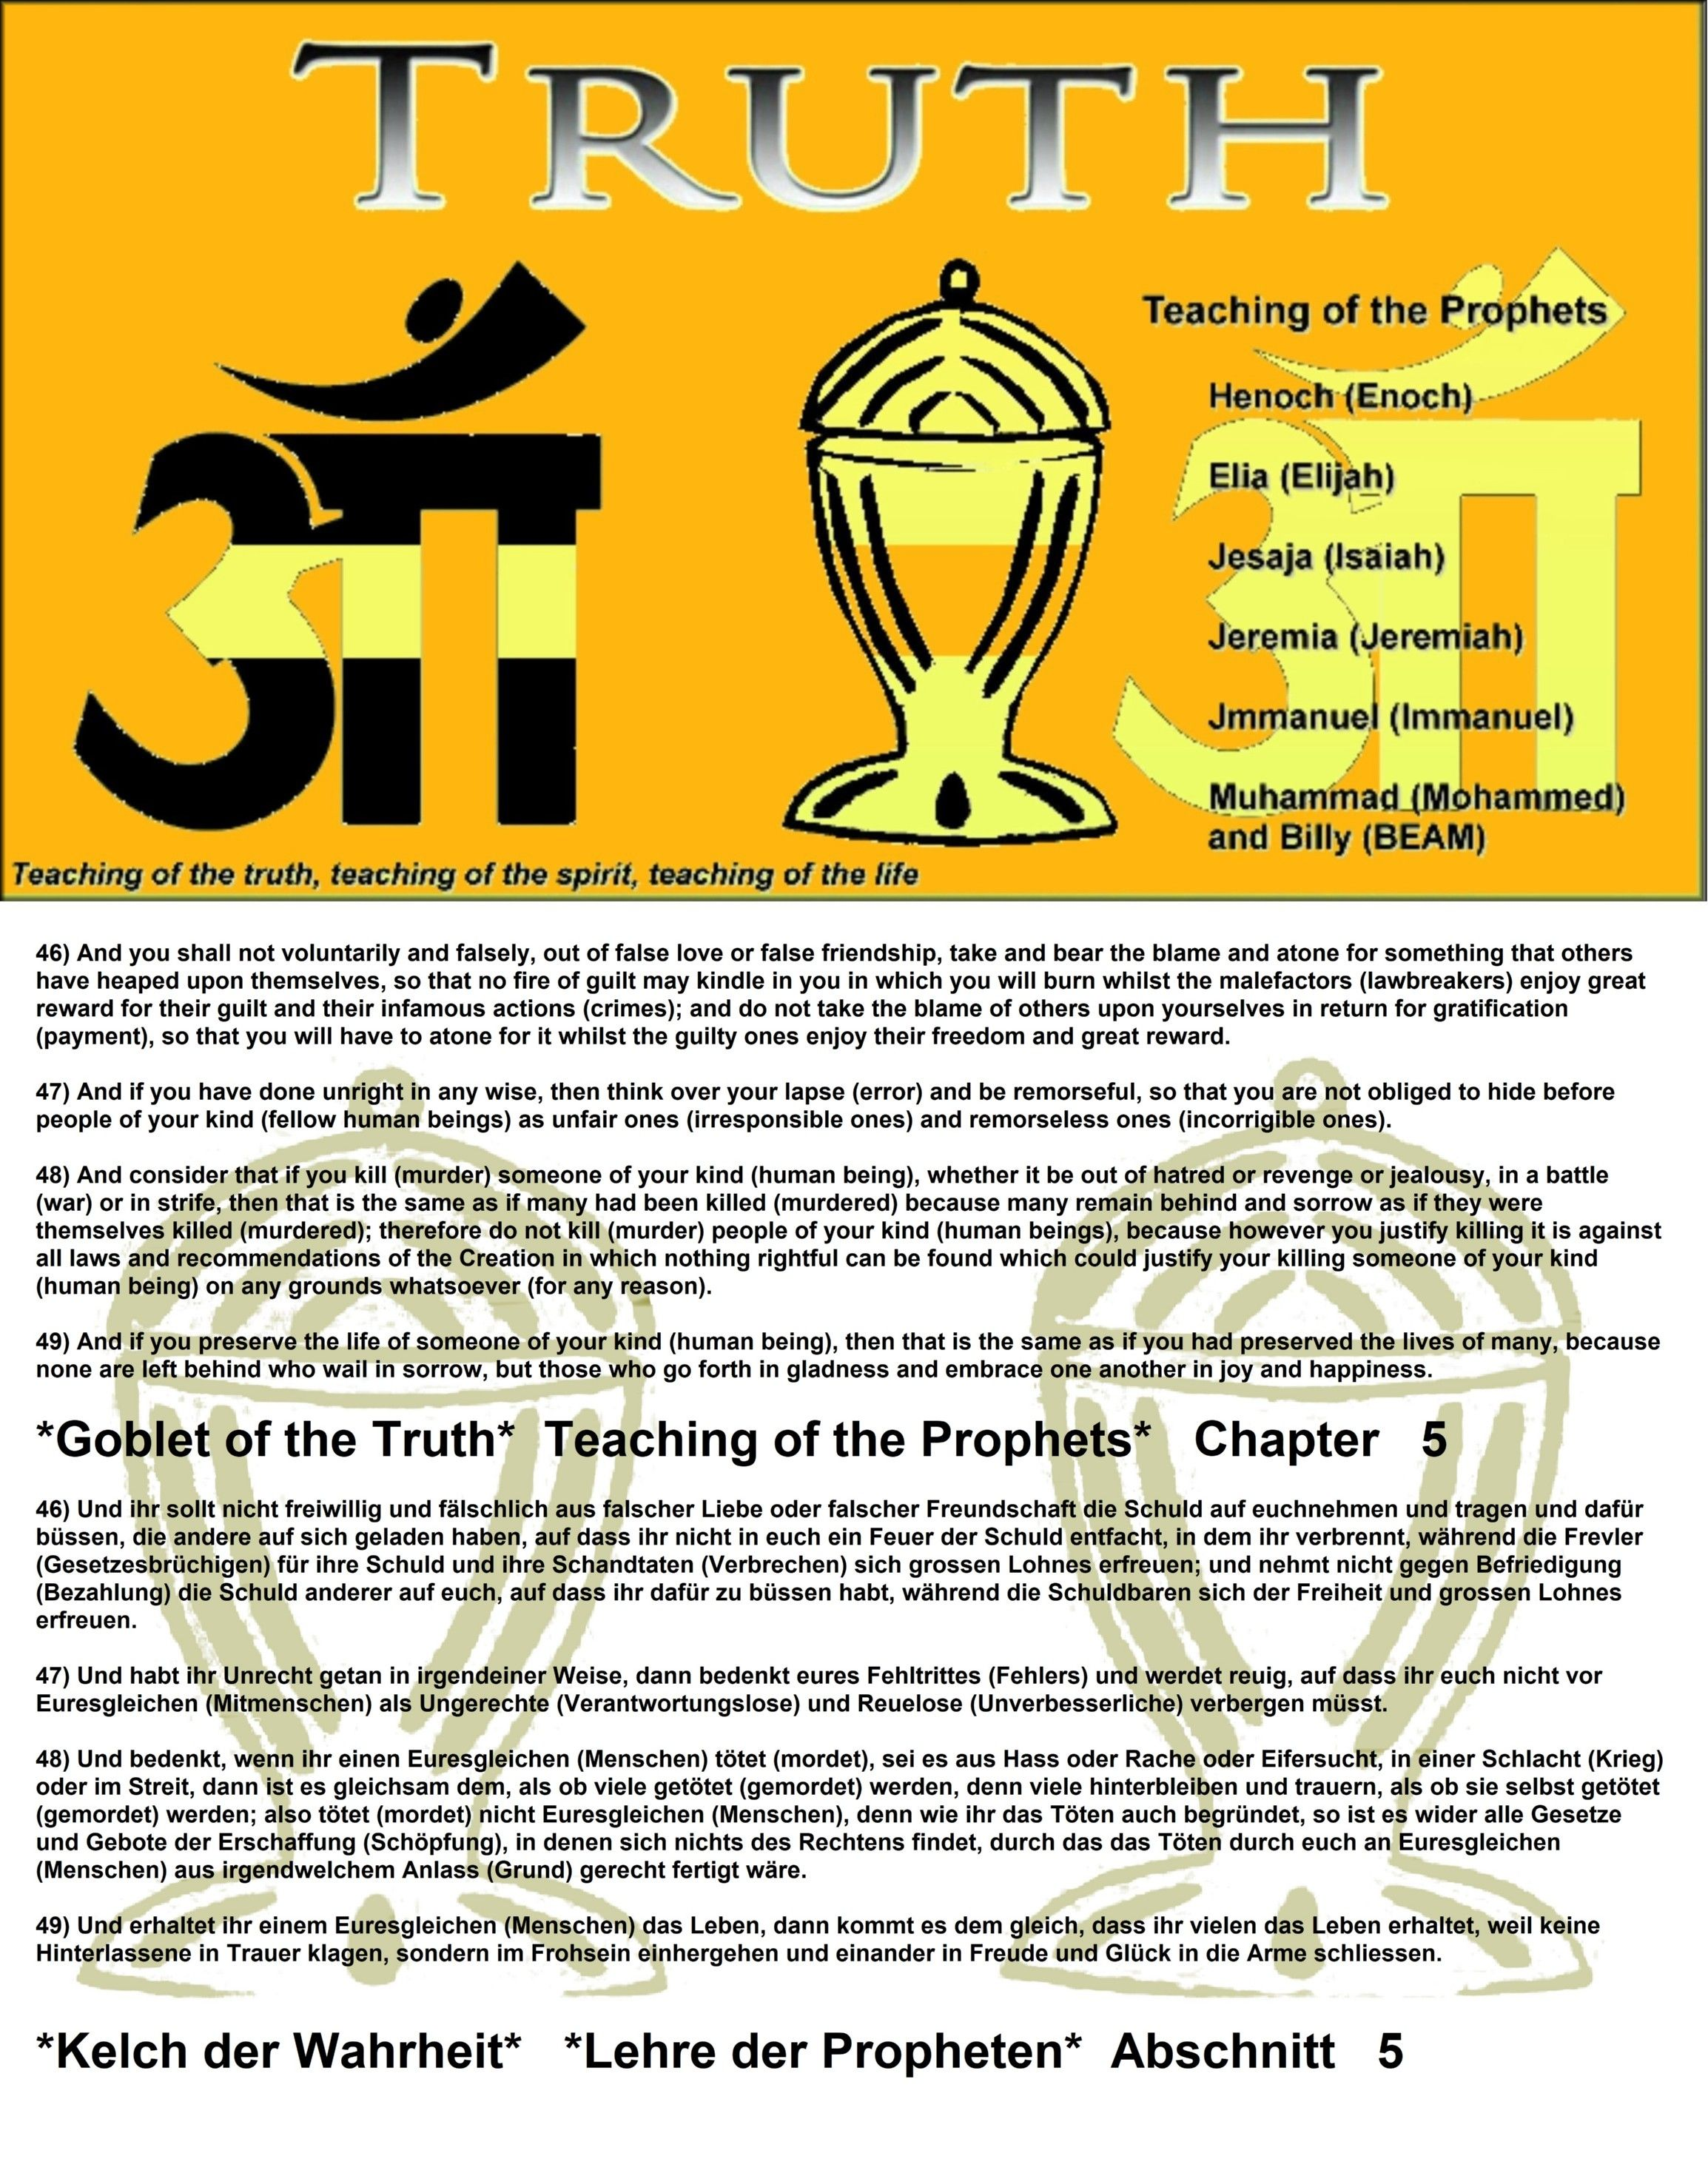 46) And you shall not voluntarily and falsely, out of false love or